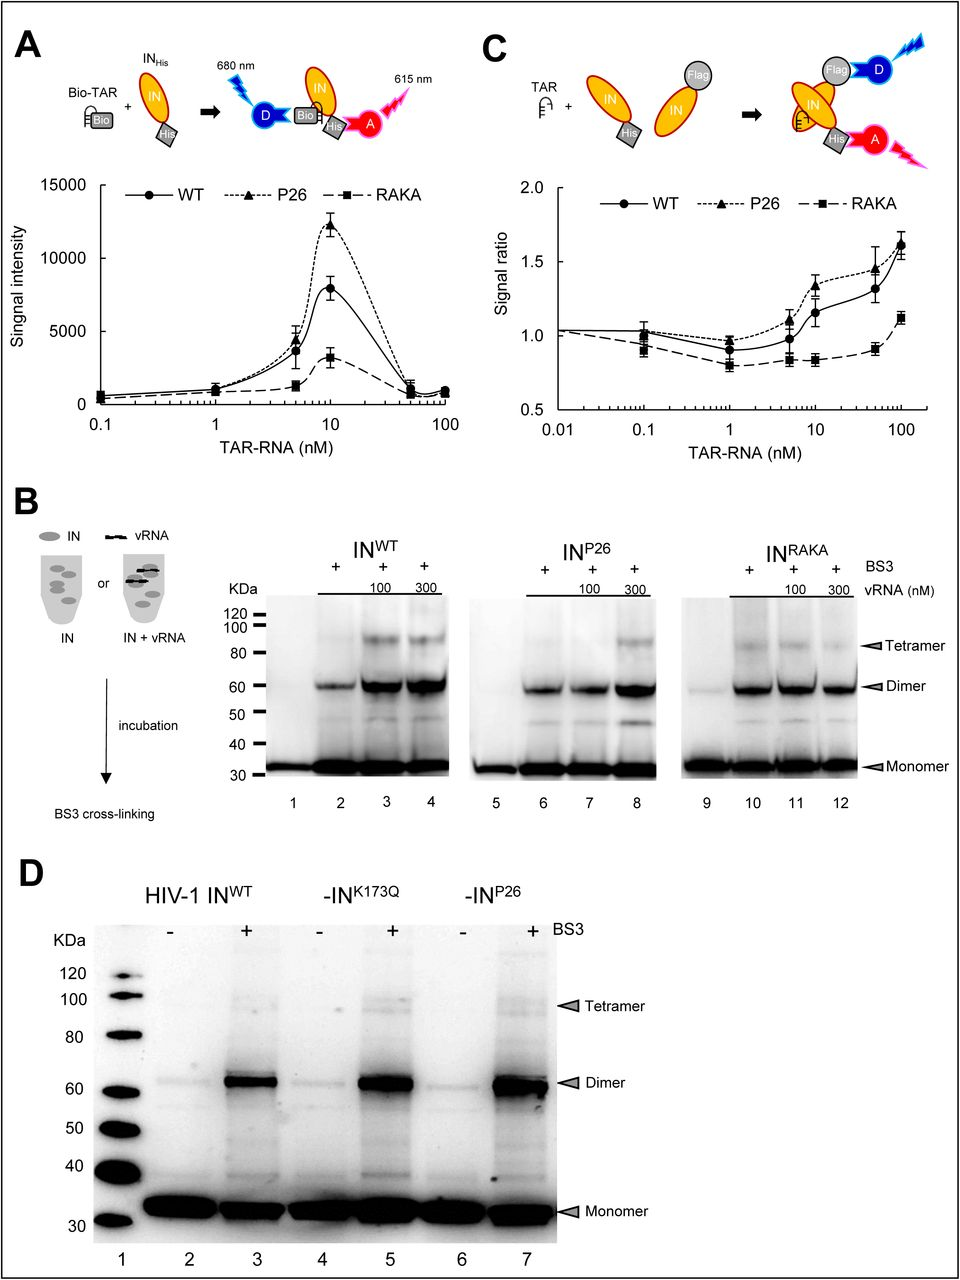 HIV-1 RNA stabilizes and restores IN under-multimerization. ( A ) AlphaScreen assay 1 for direct binding between Bio-TAR and IN His . Schematic illustration indicates that streptavidin coated Donor (D) and anti-His Accepter (A) beads bind to Bio-TAR and IN His complex at upper panel. FRET signal intensity between IN proteins (IN WT , IN P26 , and IN RAKA at 10 nM) and Bio-TAR at various concentration is shown at left panel. Data represents mean values (±SD) derived from results of three independent experiments. ( B ) Multimerization of purified His-tagged IN WT , IN P26 , and IN RAKA proteins cross-linking with BS3. Schematic illustration of the method is shown at left panel. IN WT , IN P26 , and IN RAKA proteins at 300 nM are incubated with 100 and 300 nM of HIV-1 RNA (1-850 bp), respectively. IN WT , IN P26 , and IN RAKA proteins cross-linked with 0.05 mM of BS3 (Lanes 2, 3, 4, 6, 7, 8, 10, 11, and 12) are employed 7.5 µl, and without BS3 (Lanes 1, 5, and 9) employed 3 µl, and analysed by immunoblotting with anti-HIV-1 IN antibody. ( C ) AlphaScreen assay 2 for indirect IN multimerization between F-IN and IN His . Schematic illustration indicates that anti-Flag coated D and anti-Nickel coated A beads bind to a dimer of F-IN and IN His . FRET signal intensity between IN His and F-IN proteins (IN WT , IN P26 , and IN RAKA , respectively) with various concentration of TAR-RNA is shown as a signal ratio to the signal without TAR-RNA. Data represents mean values (±SD) derived from three independent experiments. ( D ) Profile of IN multimerization in HIV-1 NL4-3 IN WT , -IN K173Q , and -IN P26 viral particles. HIV-1 IN WT , -IN K173Q , and -IN P26 clones are purified by ultracentrifugation. MW (Lane 1), the high concentrated HIV-1 samples stripped the viral membrane are cross-linked with (Lanes 3, 5, and 7) or without (Lanes 2, 4, and 6) BS3, and visualized by SDS-PAGE with anti-HIV-1 IN antibody.